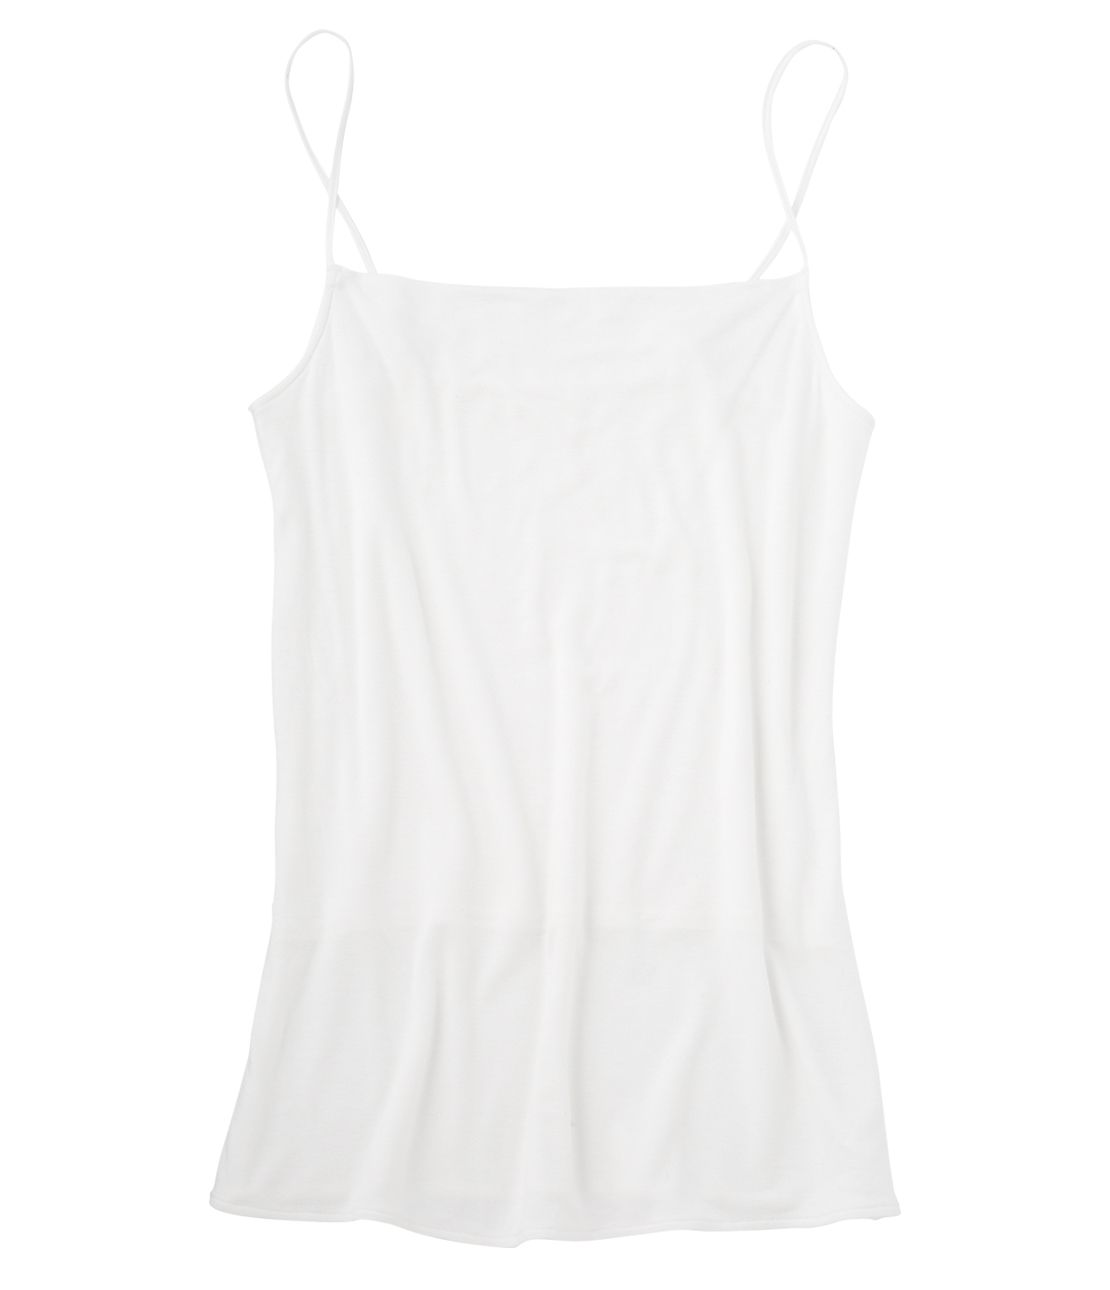 CAMI LABEL simple straight Cami